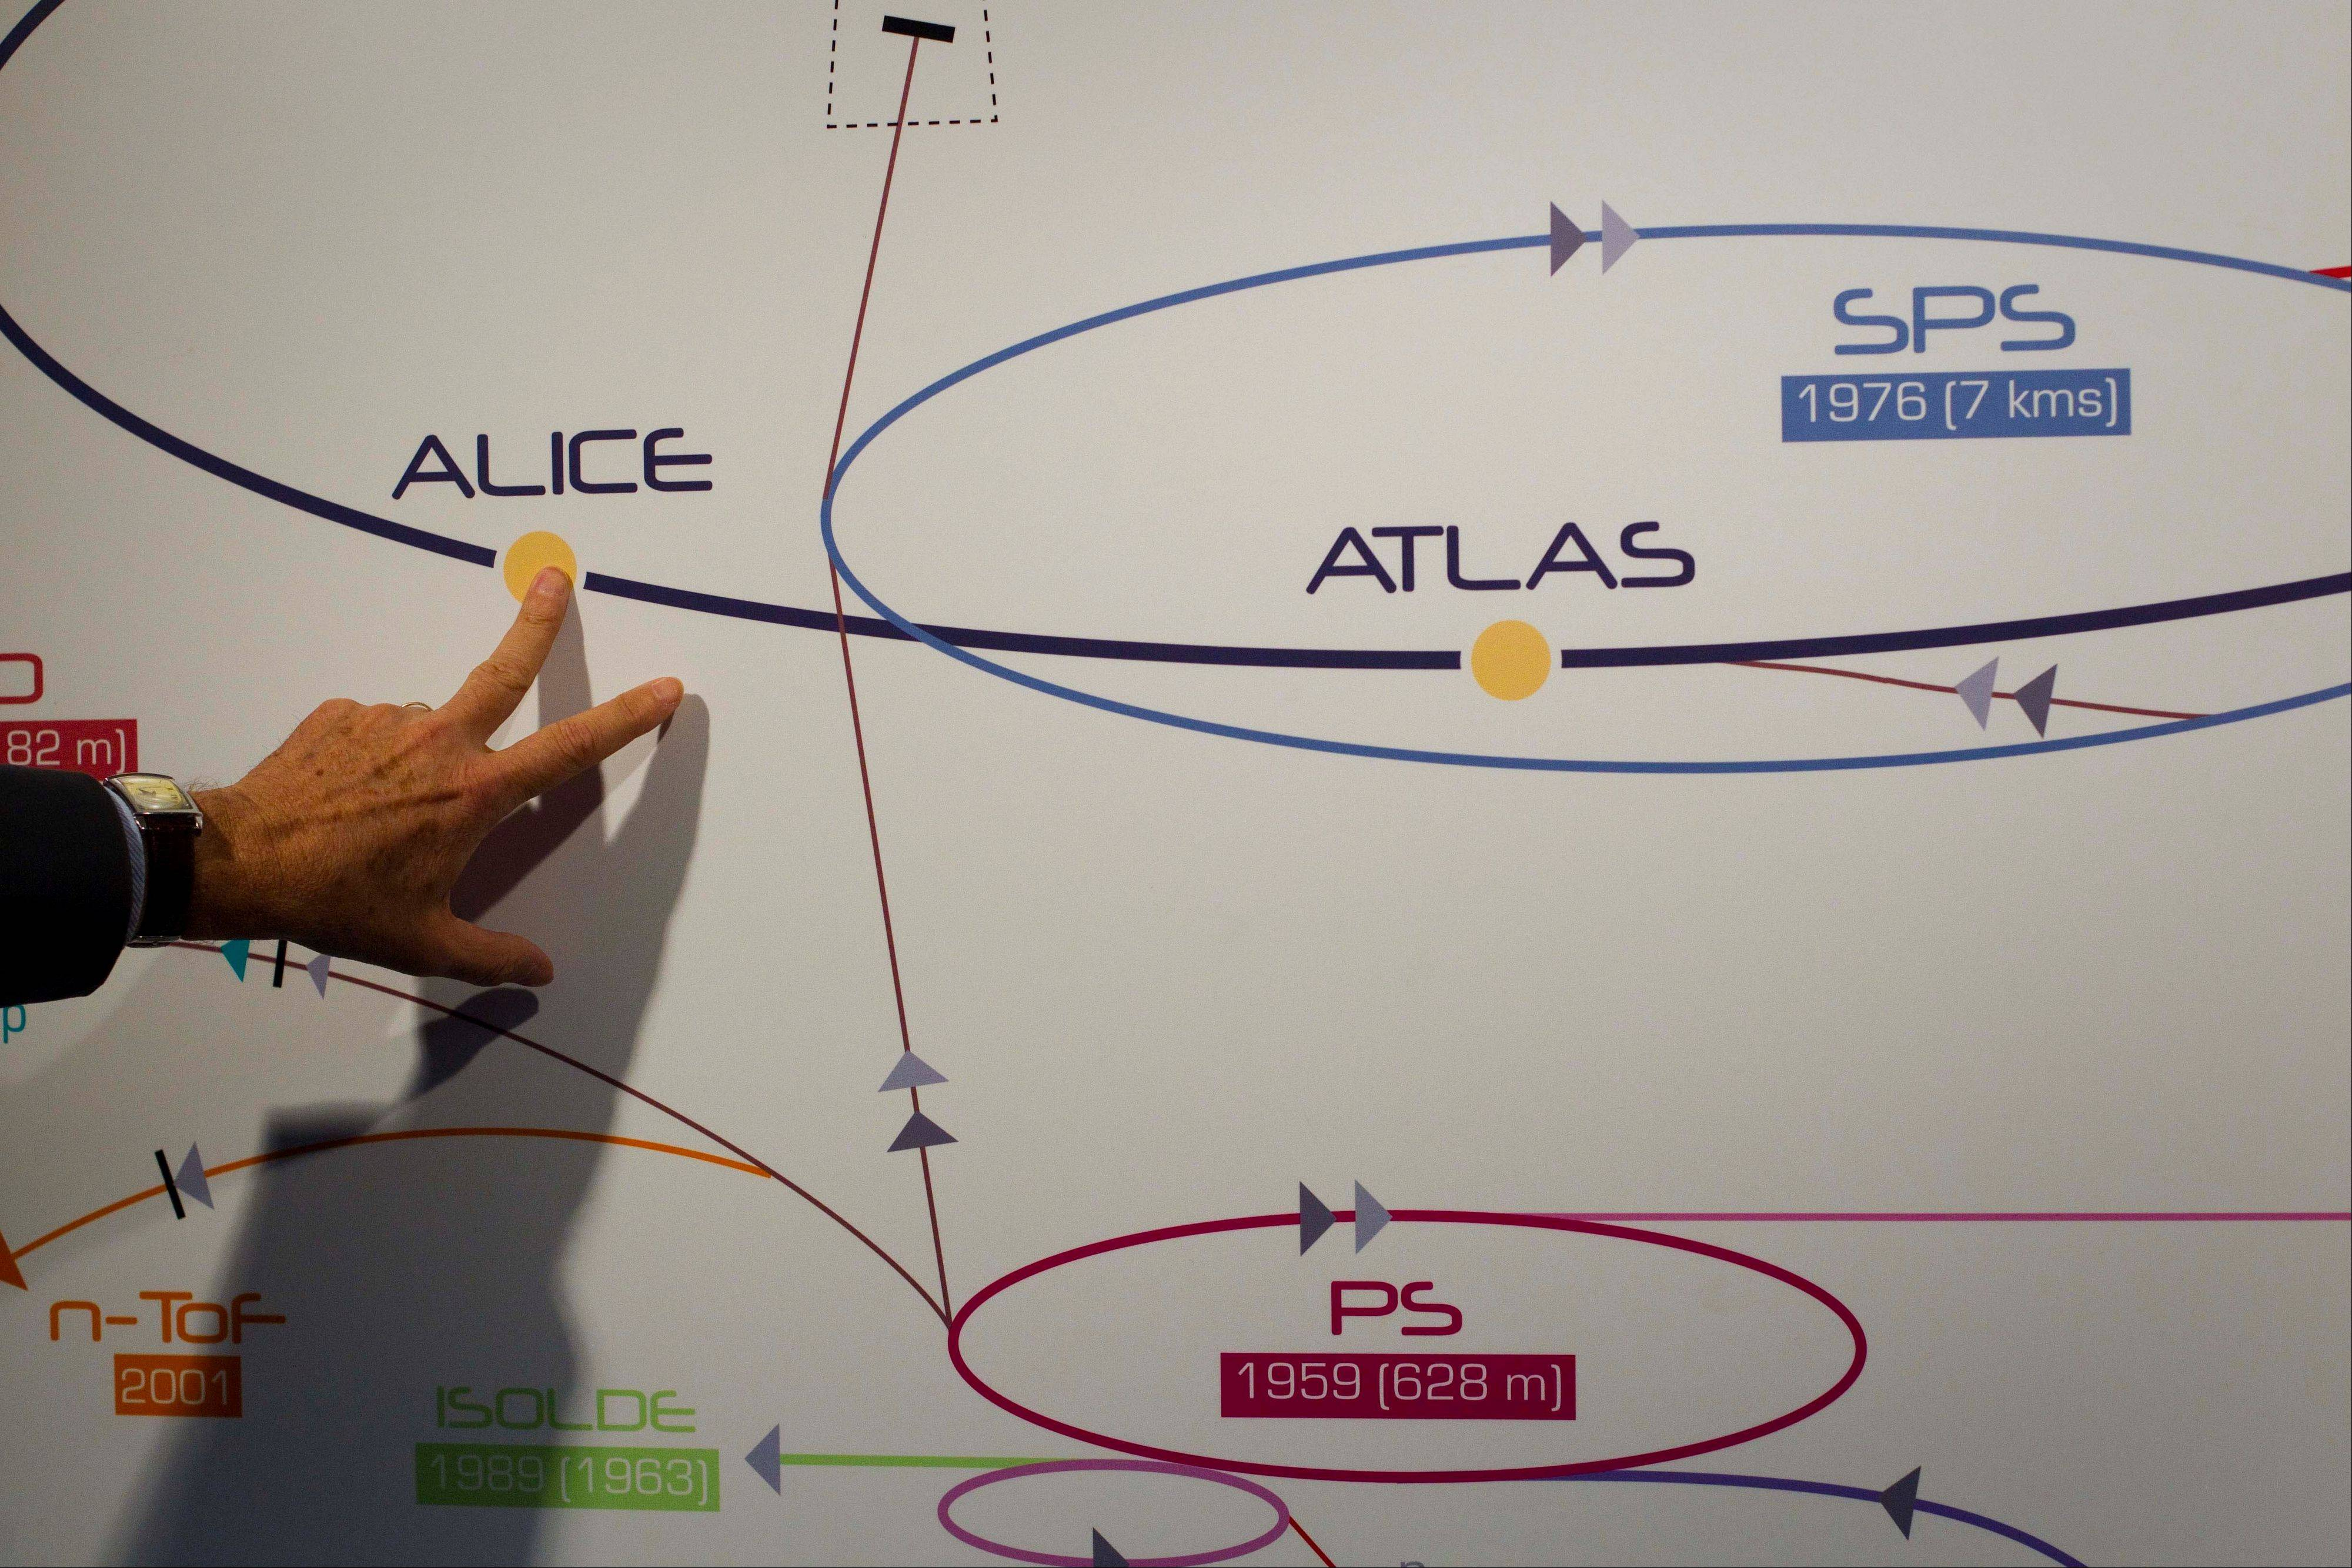 A physicist explains the ATLAS experiment on a board at the European Center for Nuclear Research, CERN, outside Geneva, Switzerland. The illustration shows what the long-presumed Higgs boson particle is thought to look like.